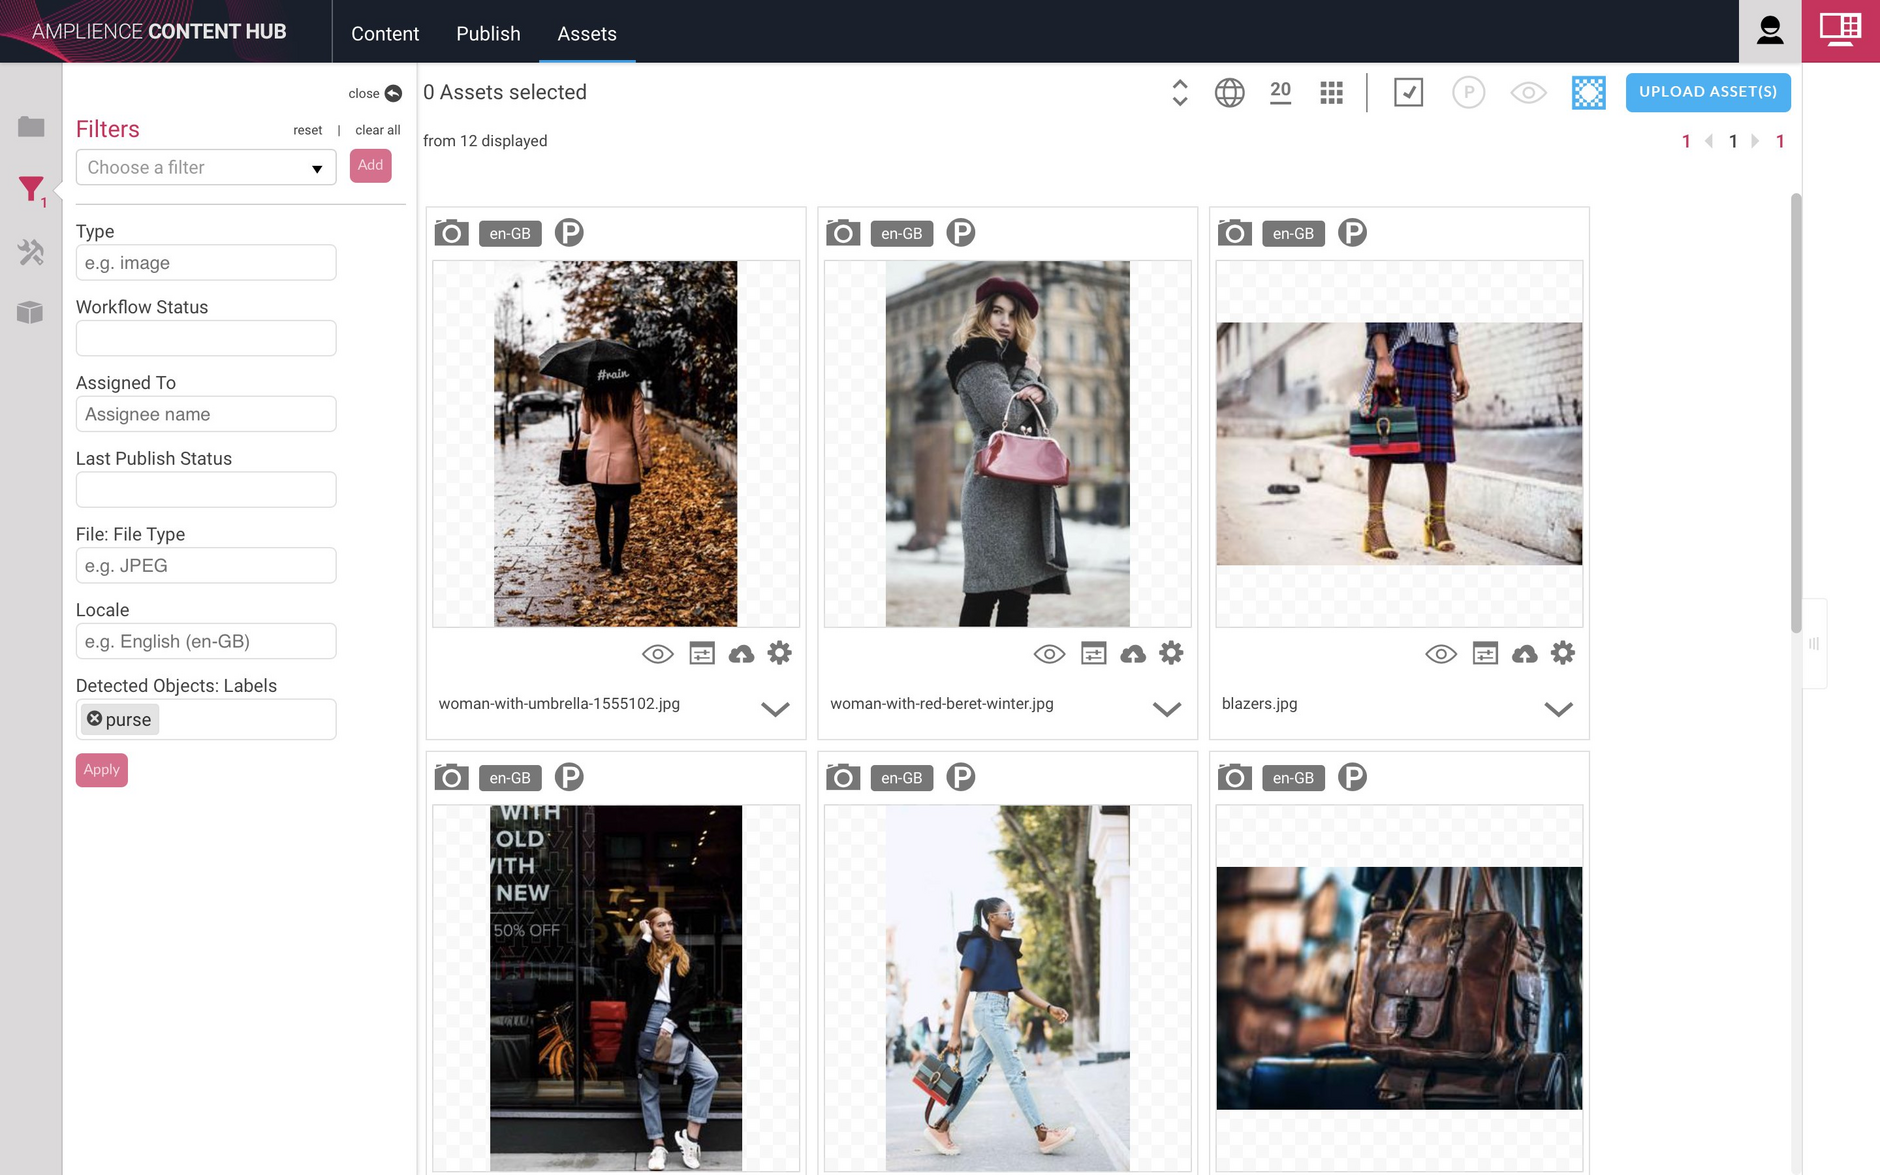 Filtering on those images containing a purse